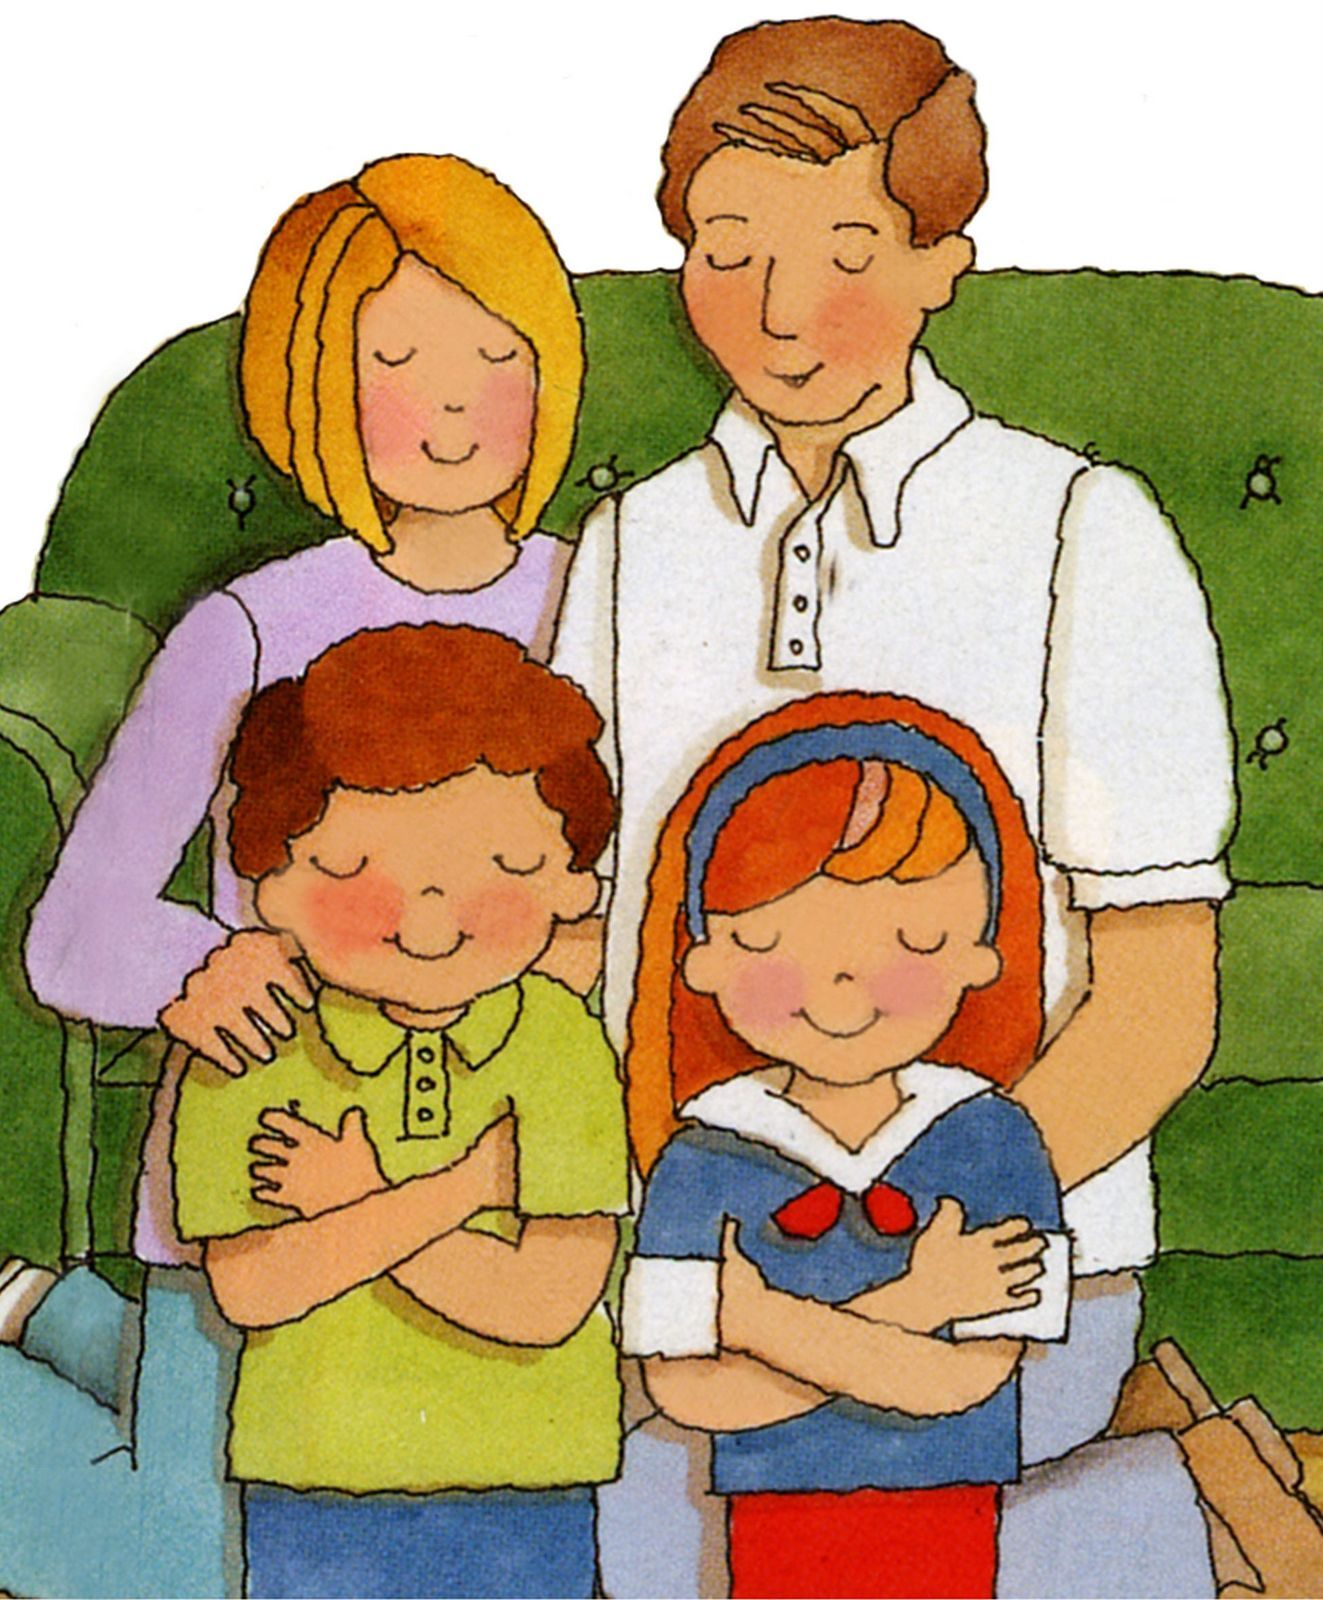 ldsclipart s gallery on picasa lots of really wonderful lds rh pinterest com lds clipart family home evening lds family praying clipart